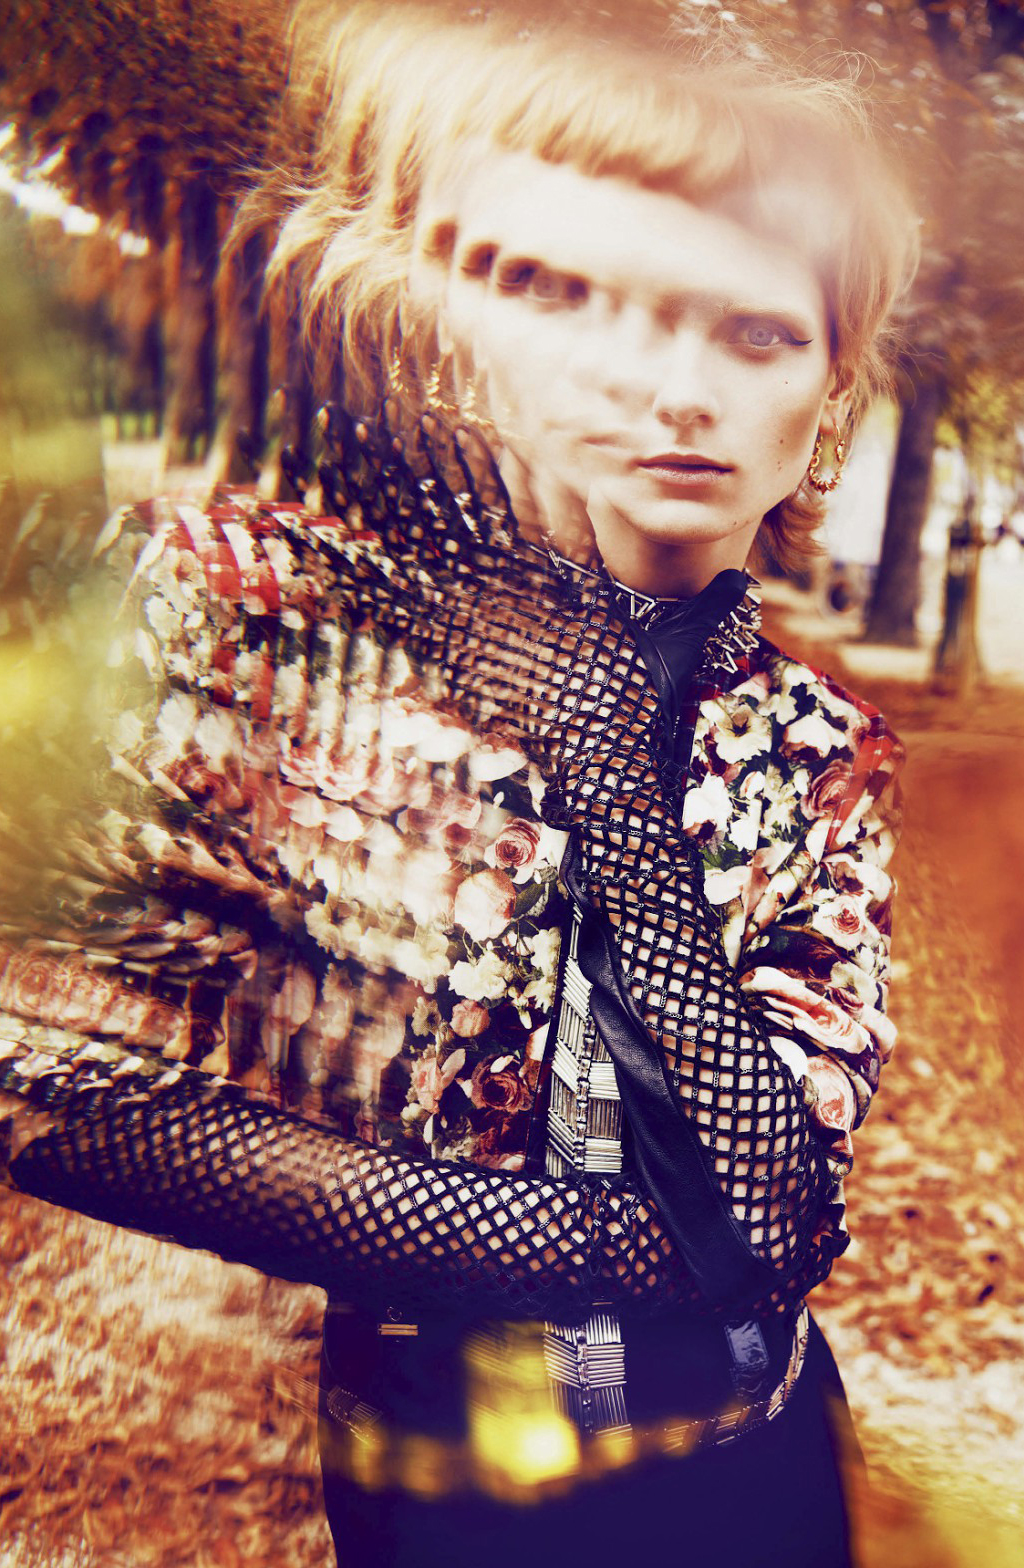 Stylist France October 2013 (photography: Marcin Tyszka, styling: Belen Casadevall)